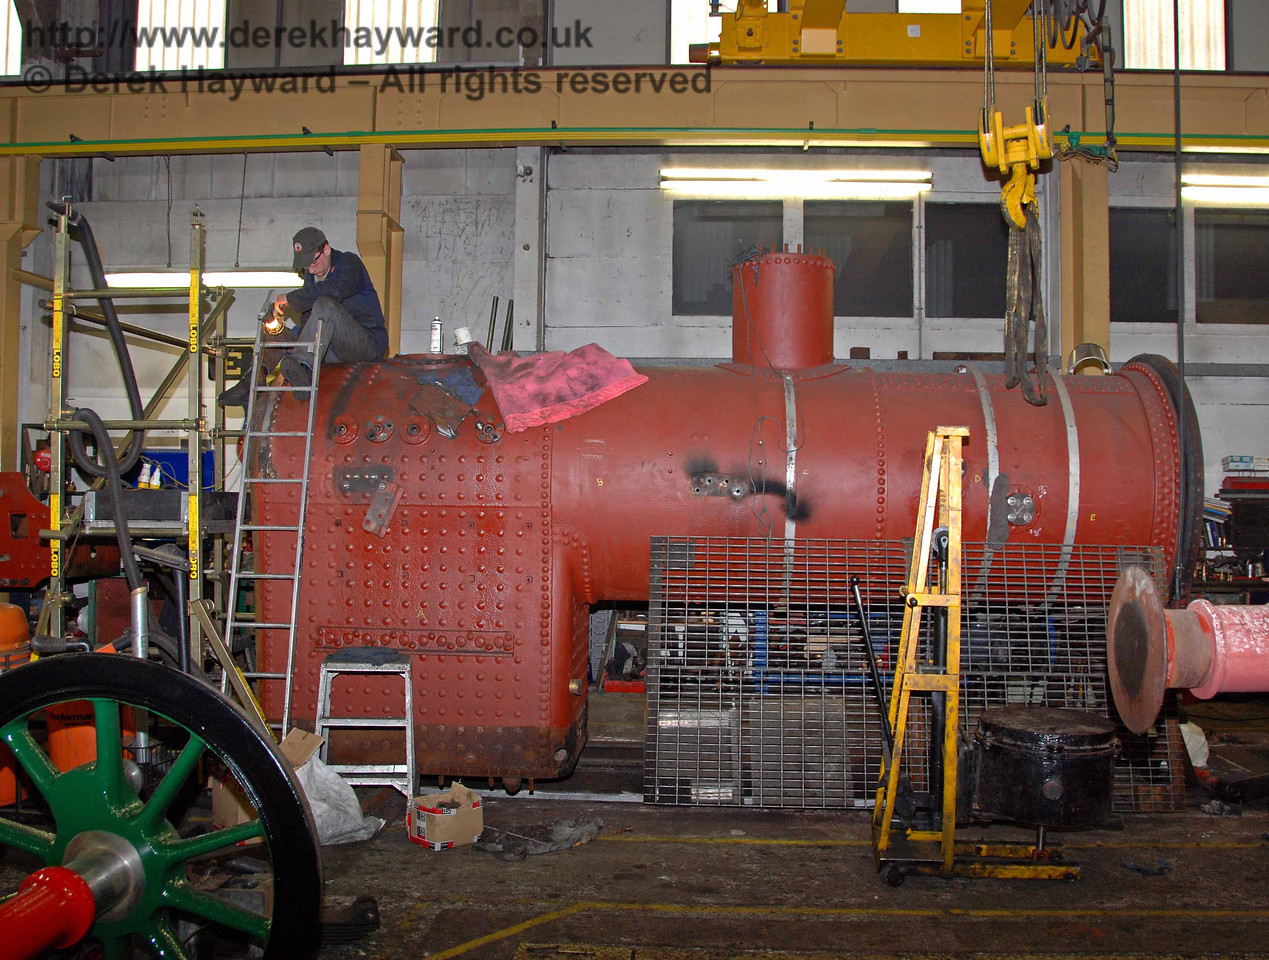 Work was continuing on the boiler from 263. Sheffield Park Workshops 15.11.2009